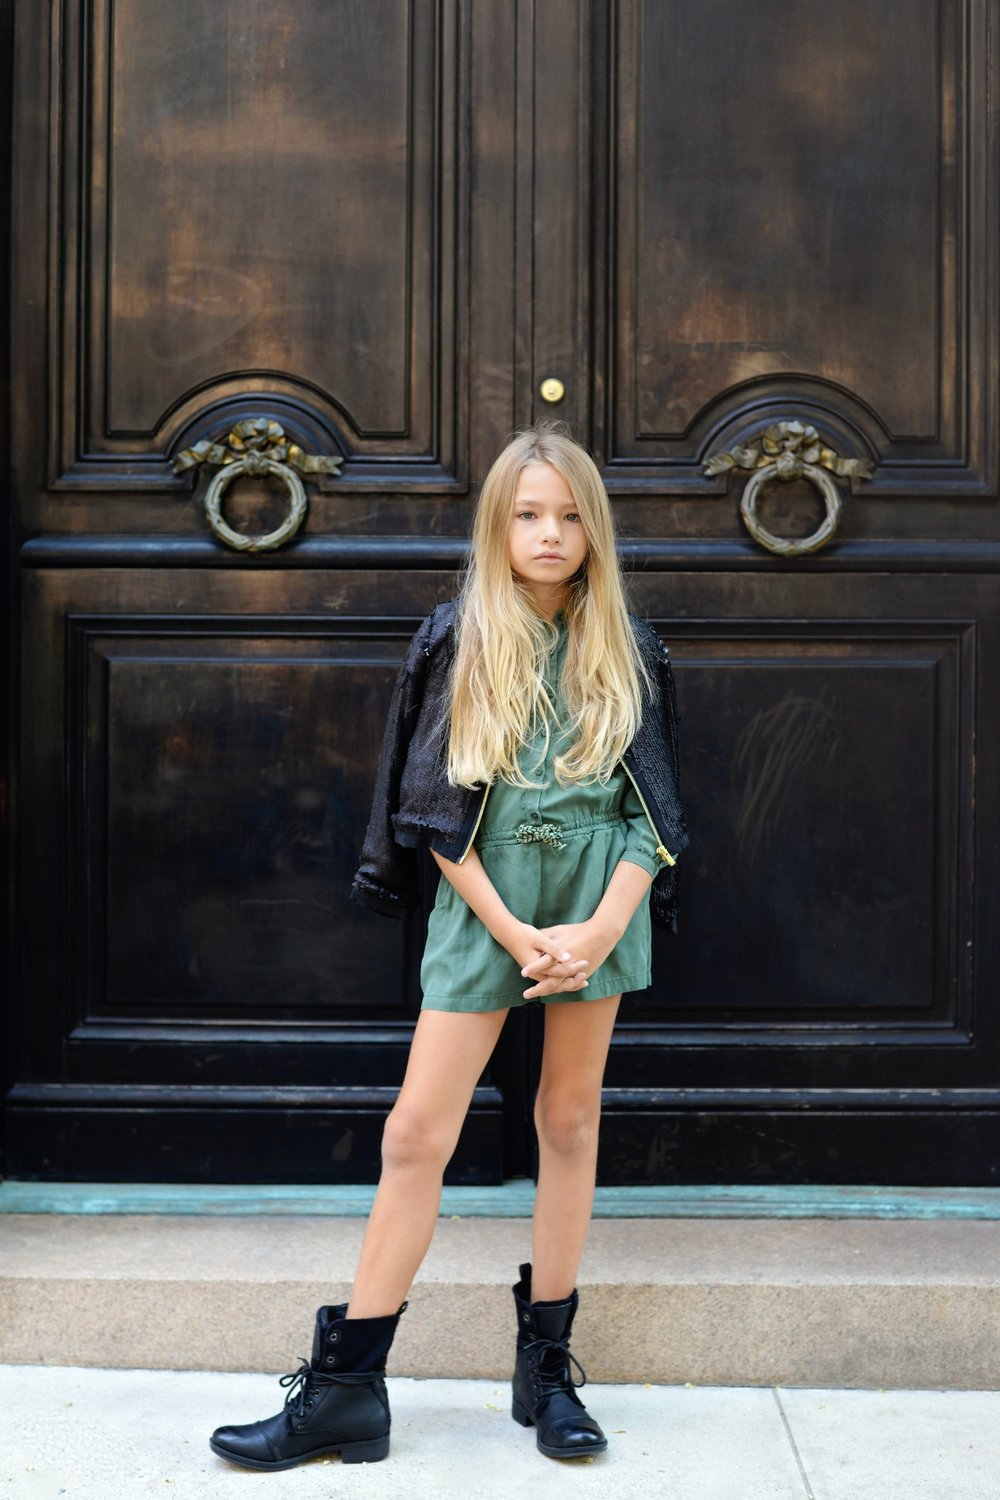 Enfant+Street+Style+by+Gina+Kim+Photography-59.jpeg